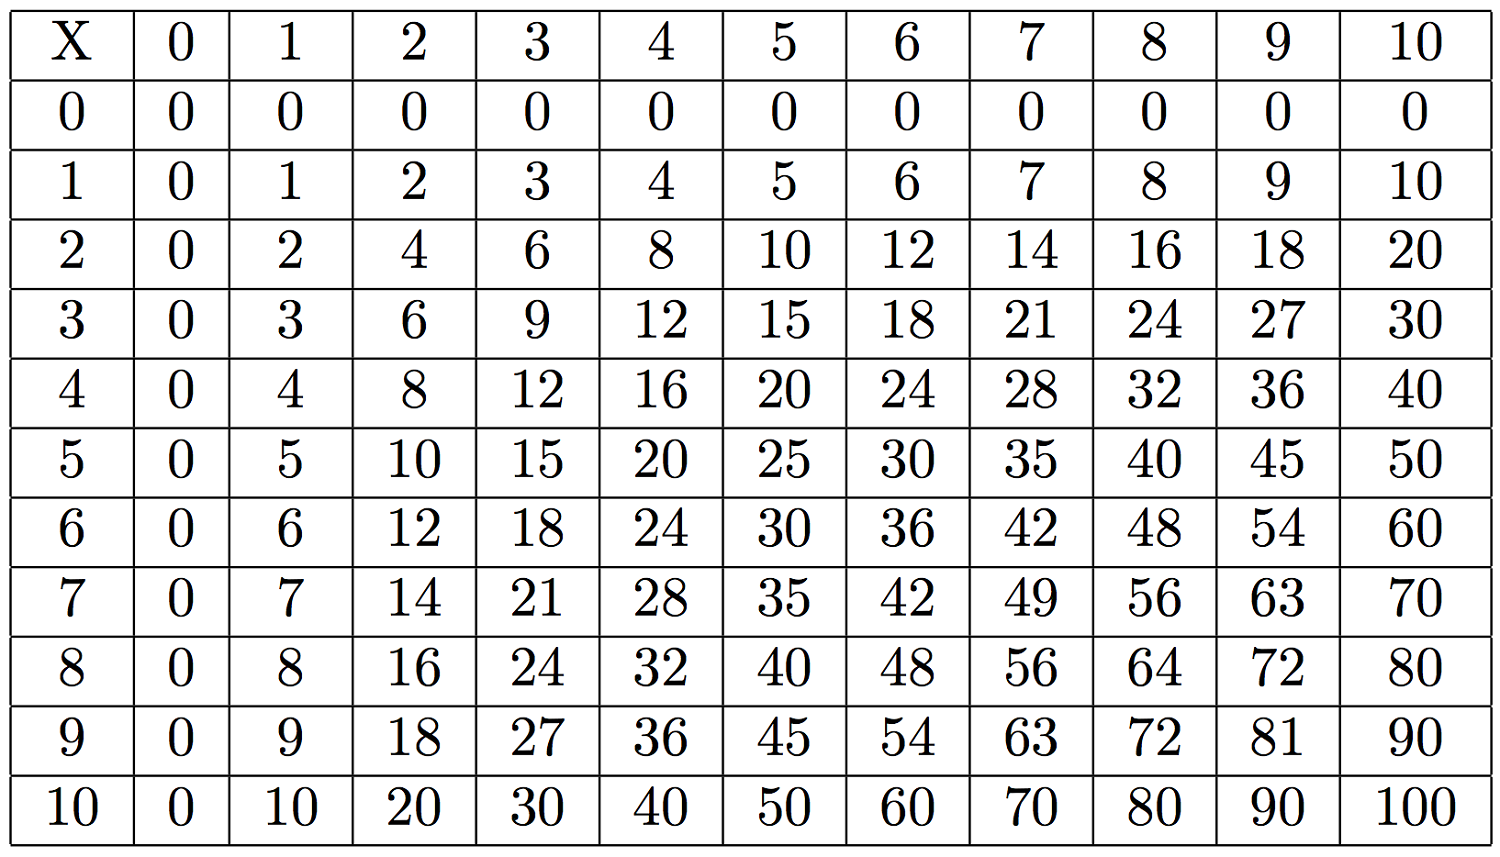 Large multiplication table to train memory activity shelter large multiplication table to train memory activity shelter geenschuldenfo Image collections